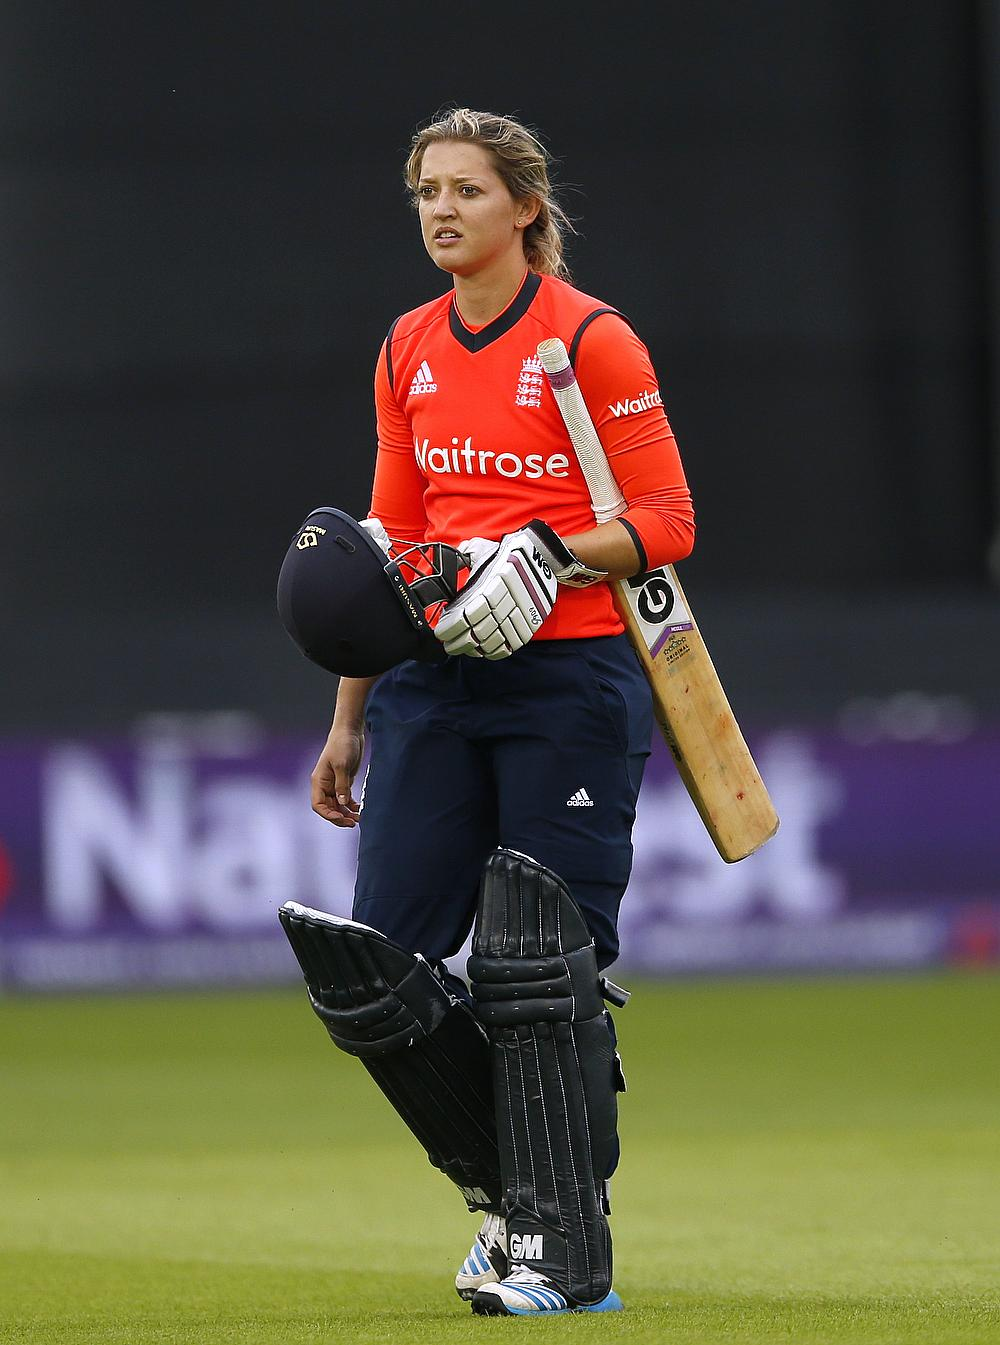 England Women announce 24-member training squad